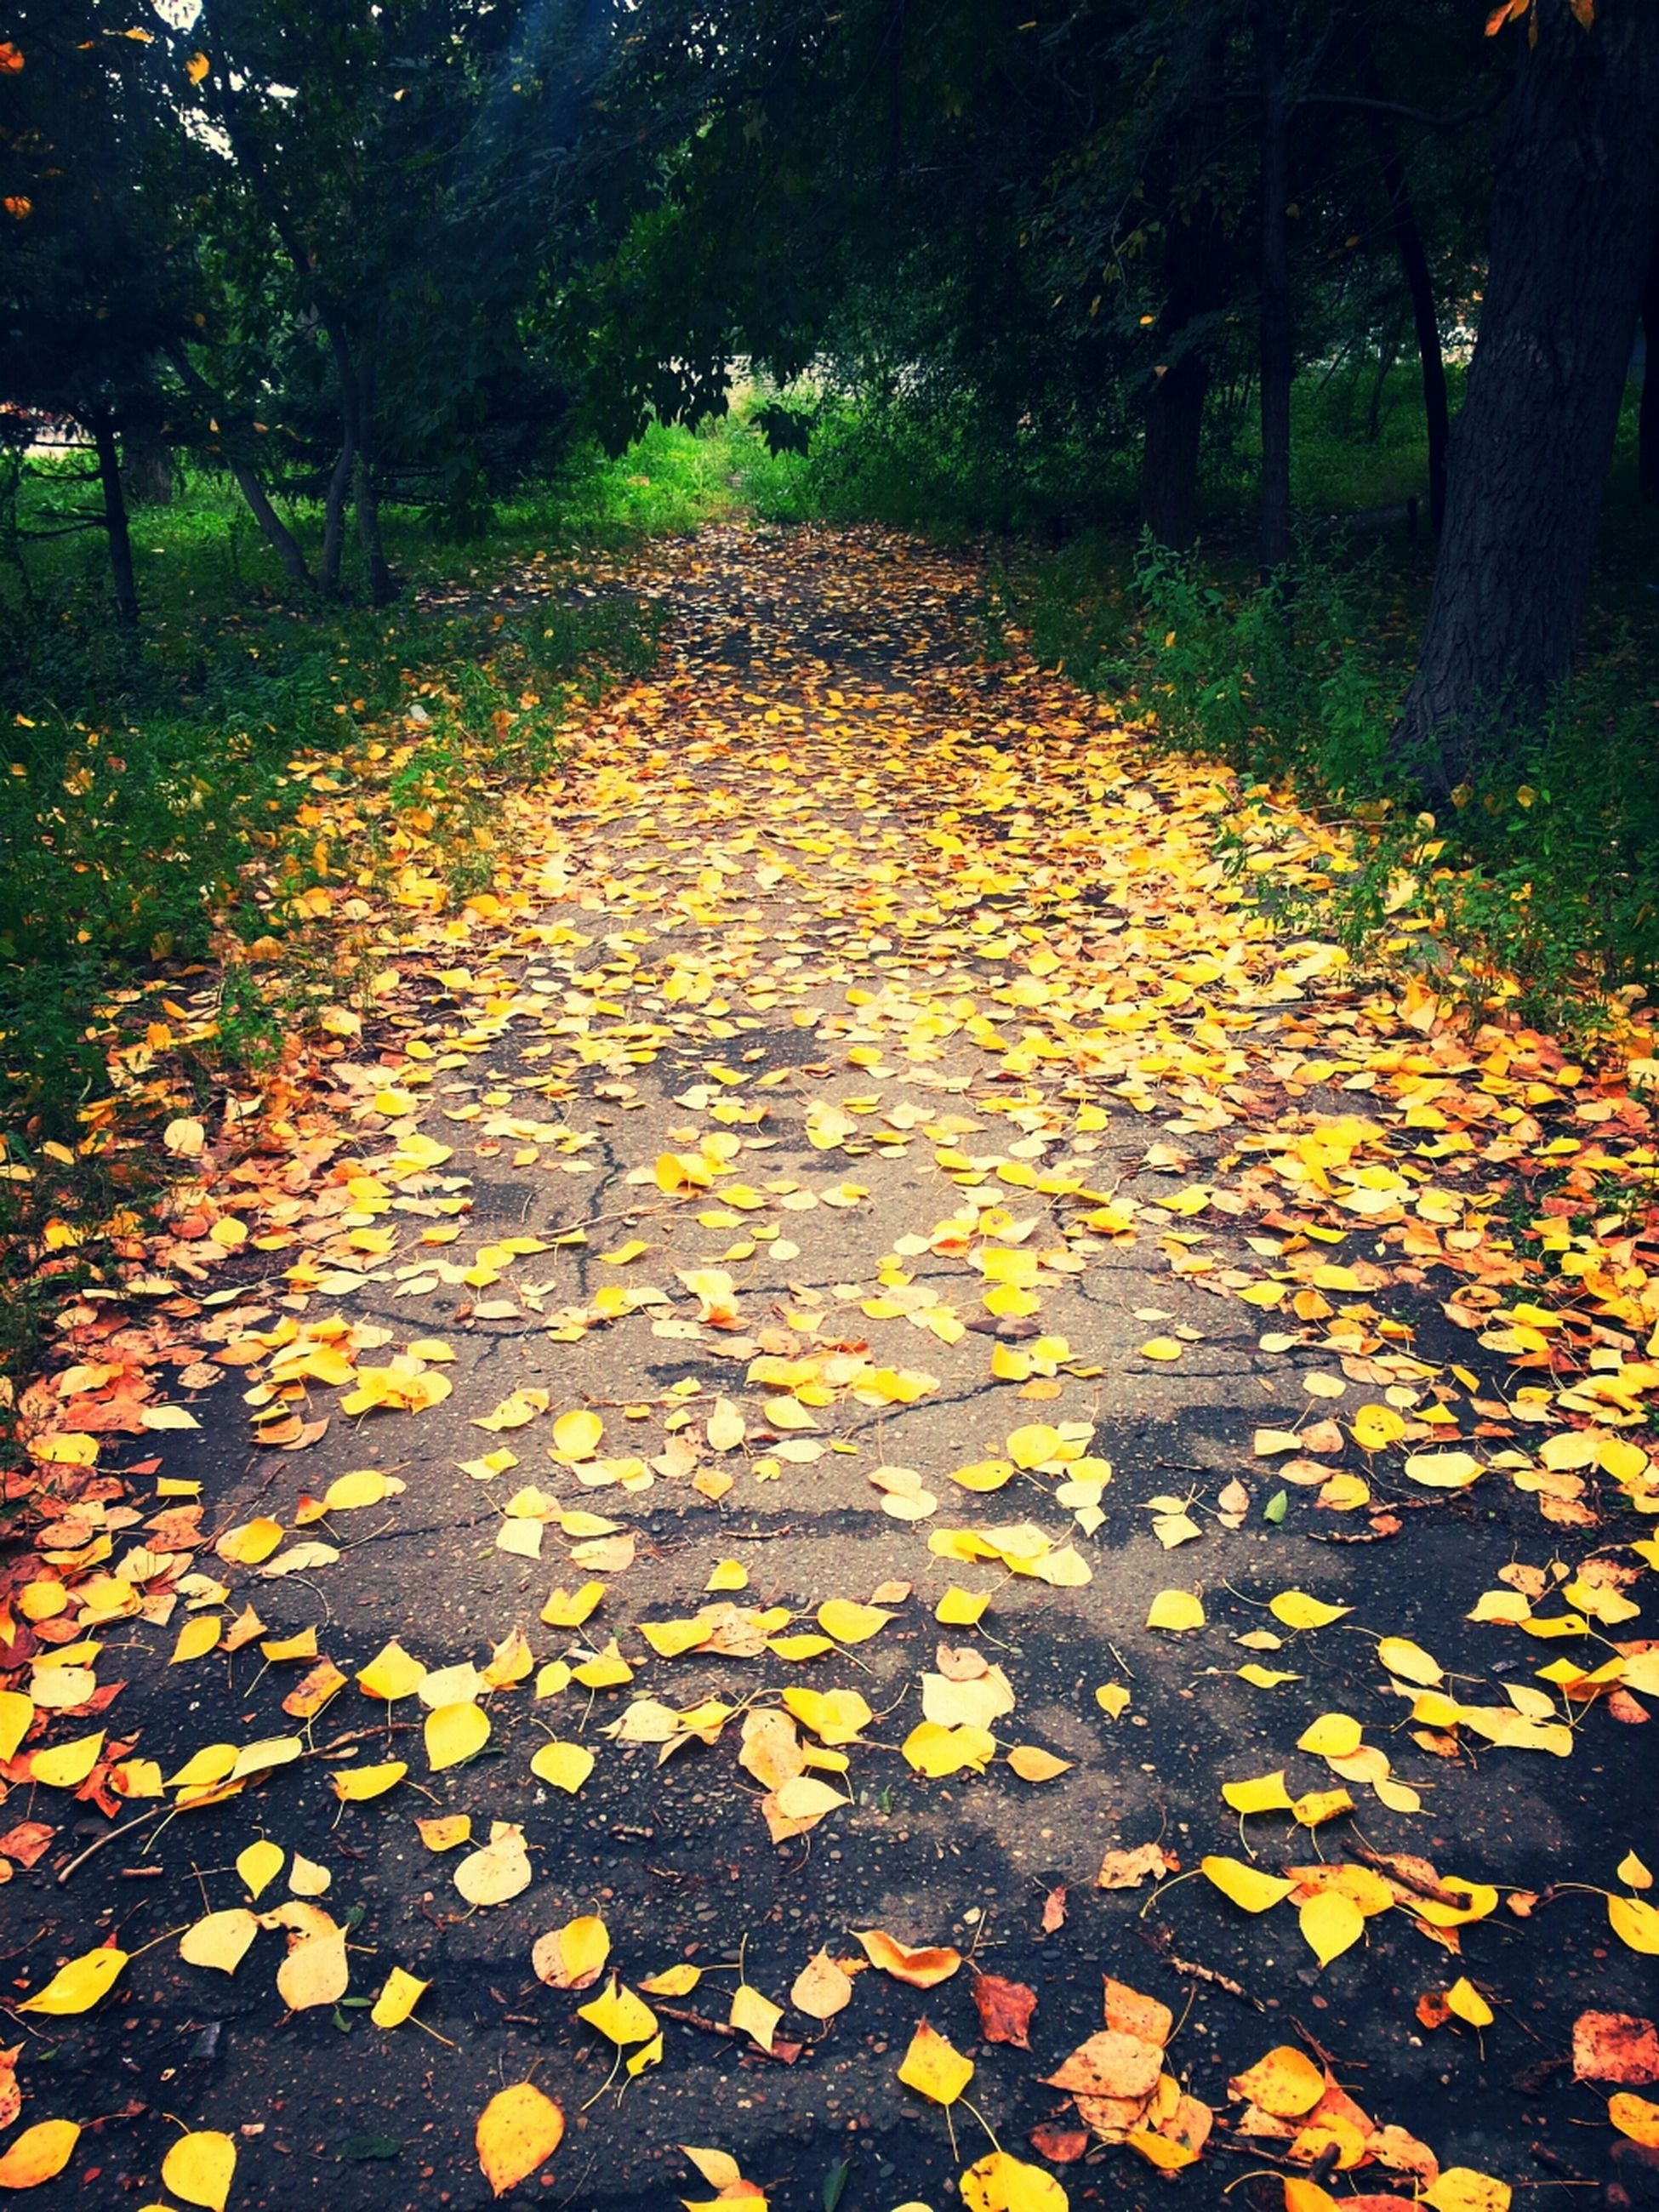 autumn, change, tree, leaf, season, the way forward, yellow, fallen, nature, road, transportation, leaves, tranquility, dry, street, asphalt, growth, beauty in nature, diminishing perspective, outdoors